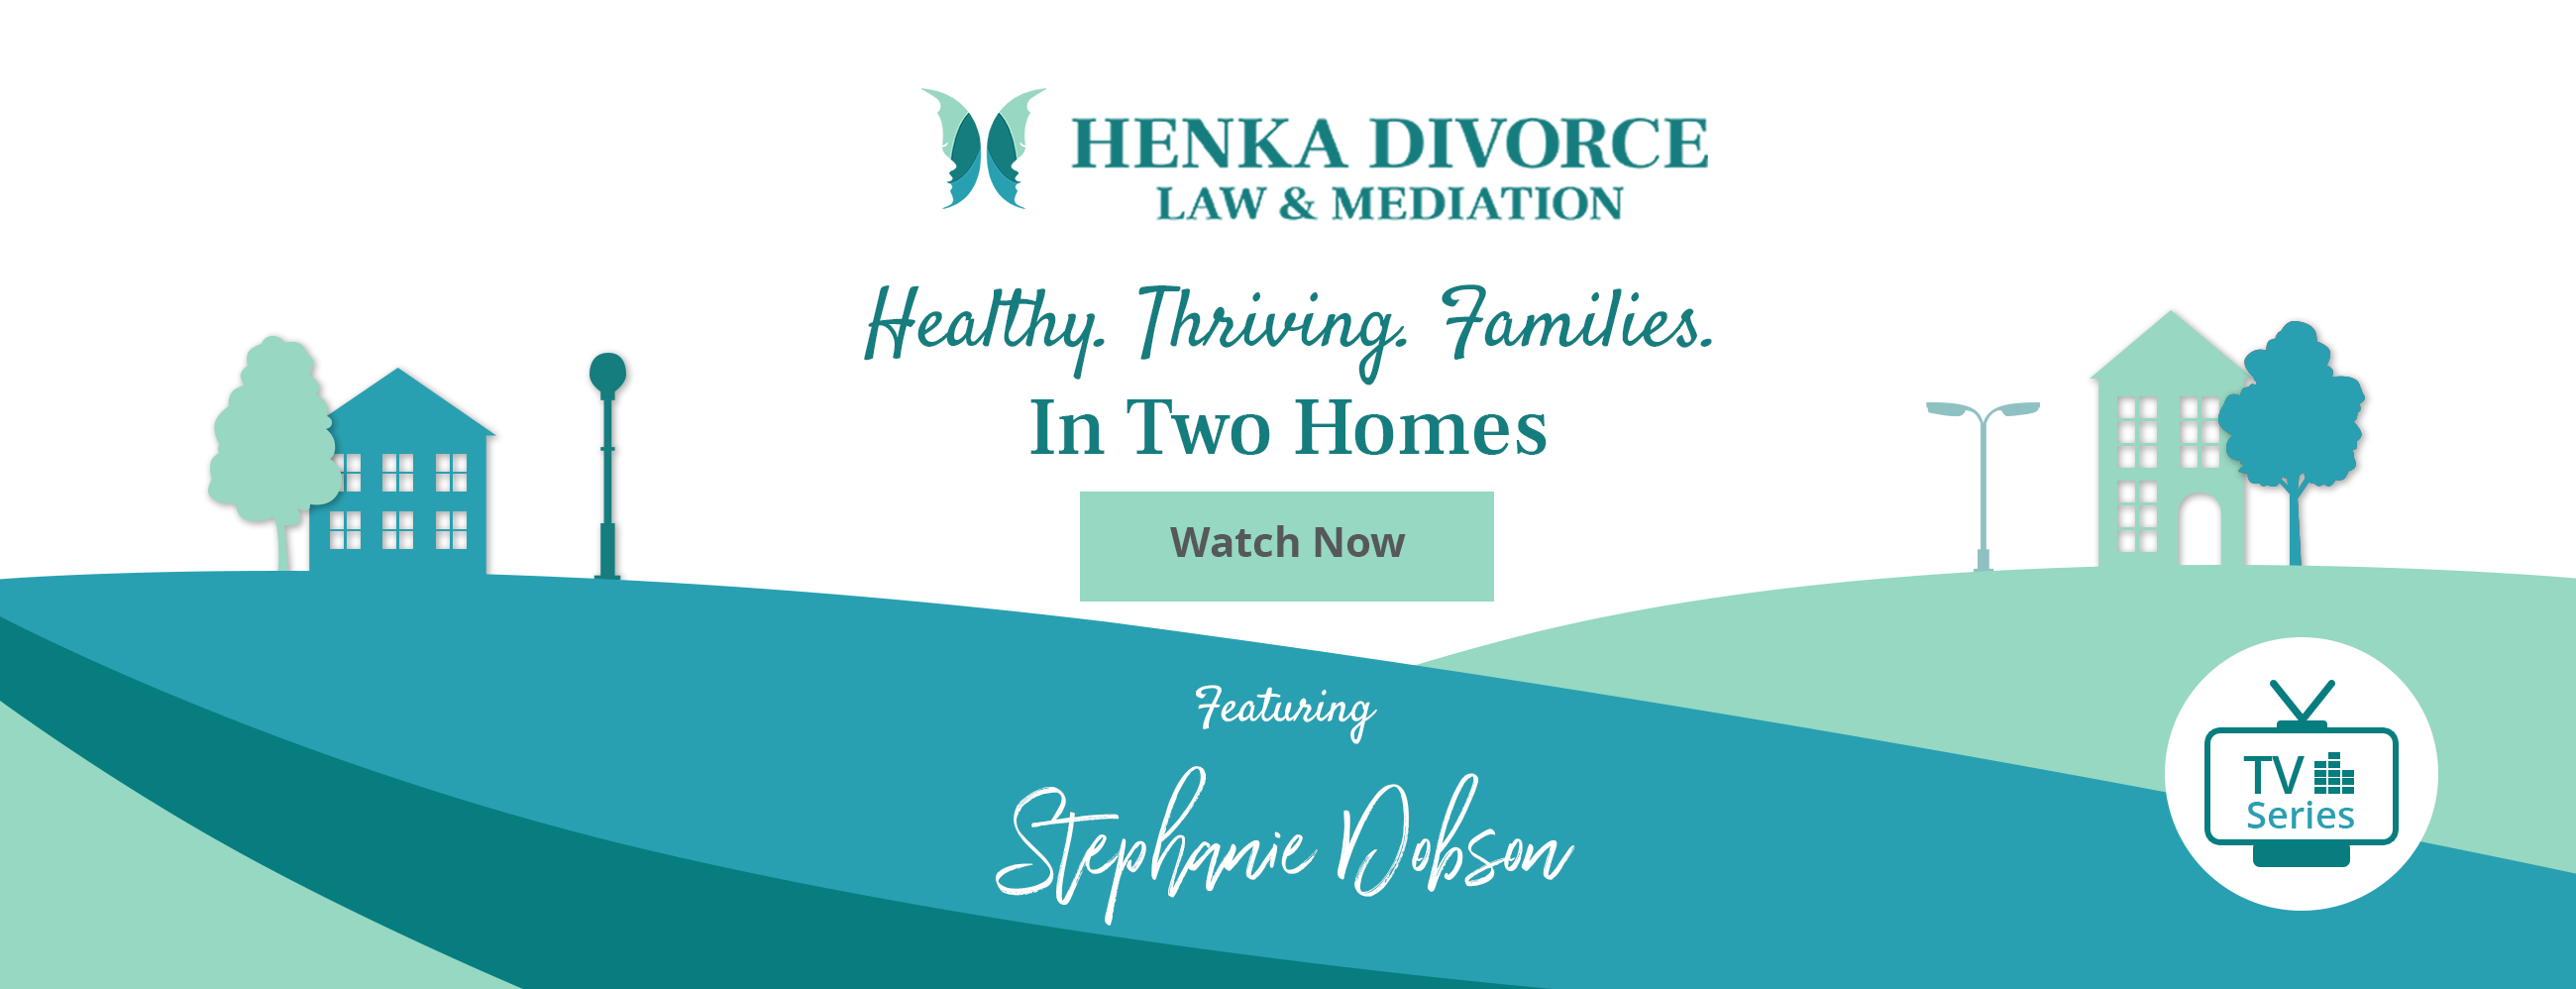 Henka Divorce TV Series